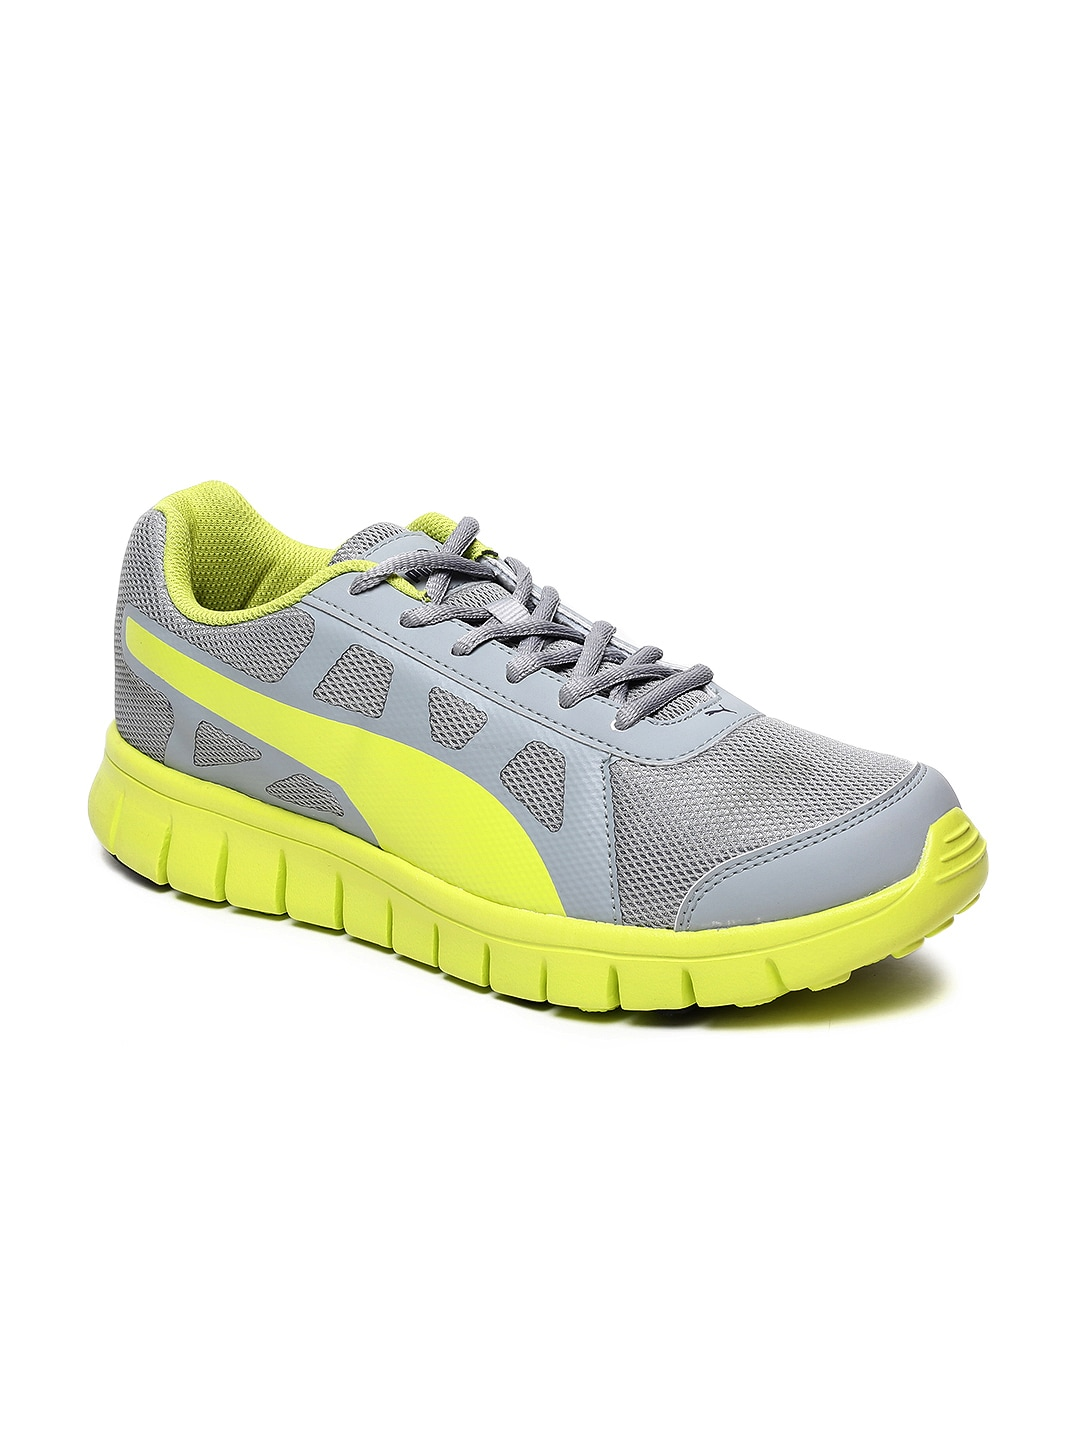 7f40c6a8e Decathlon Sports Shoes - Buy Decathlon Sports Shoes Online in India